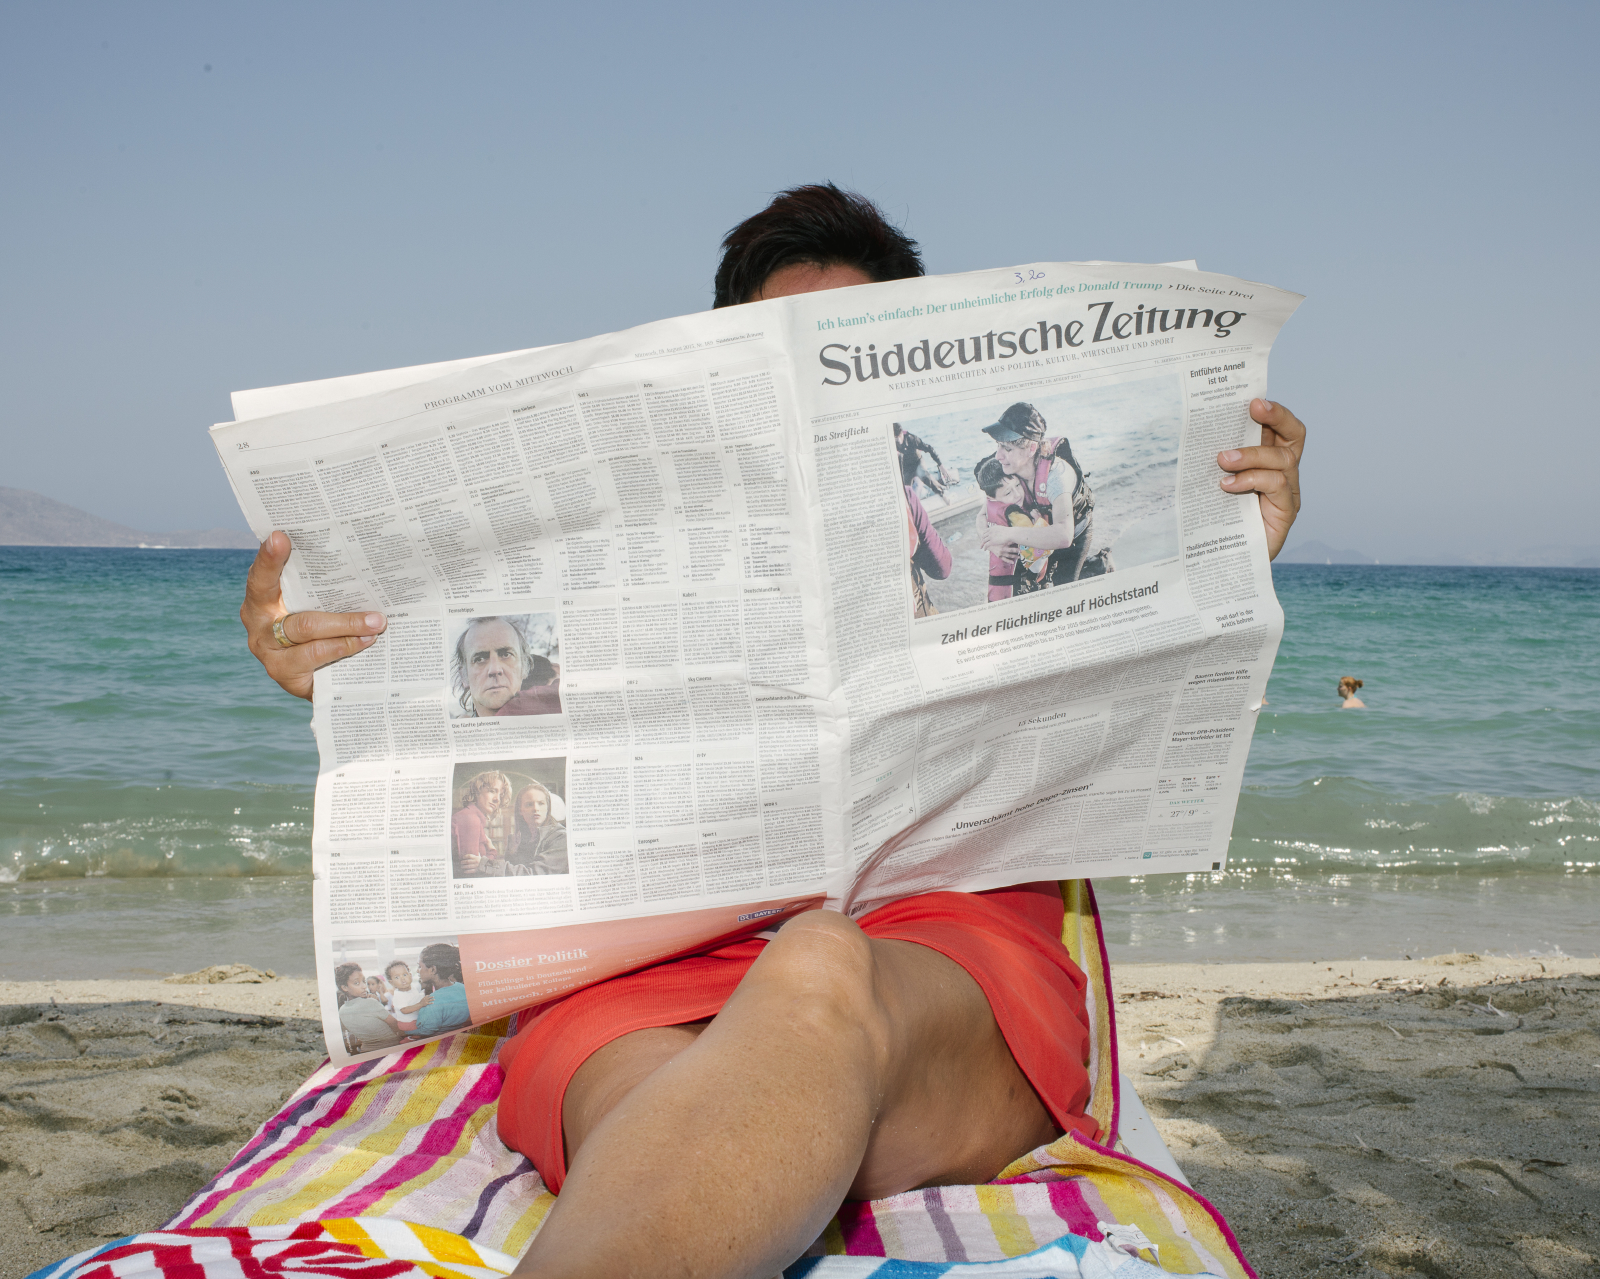 Tourist reading the newspaper on the beach, August 2015, Kos, Kos Island, Greece, Europe